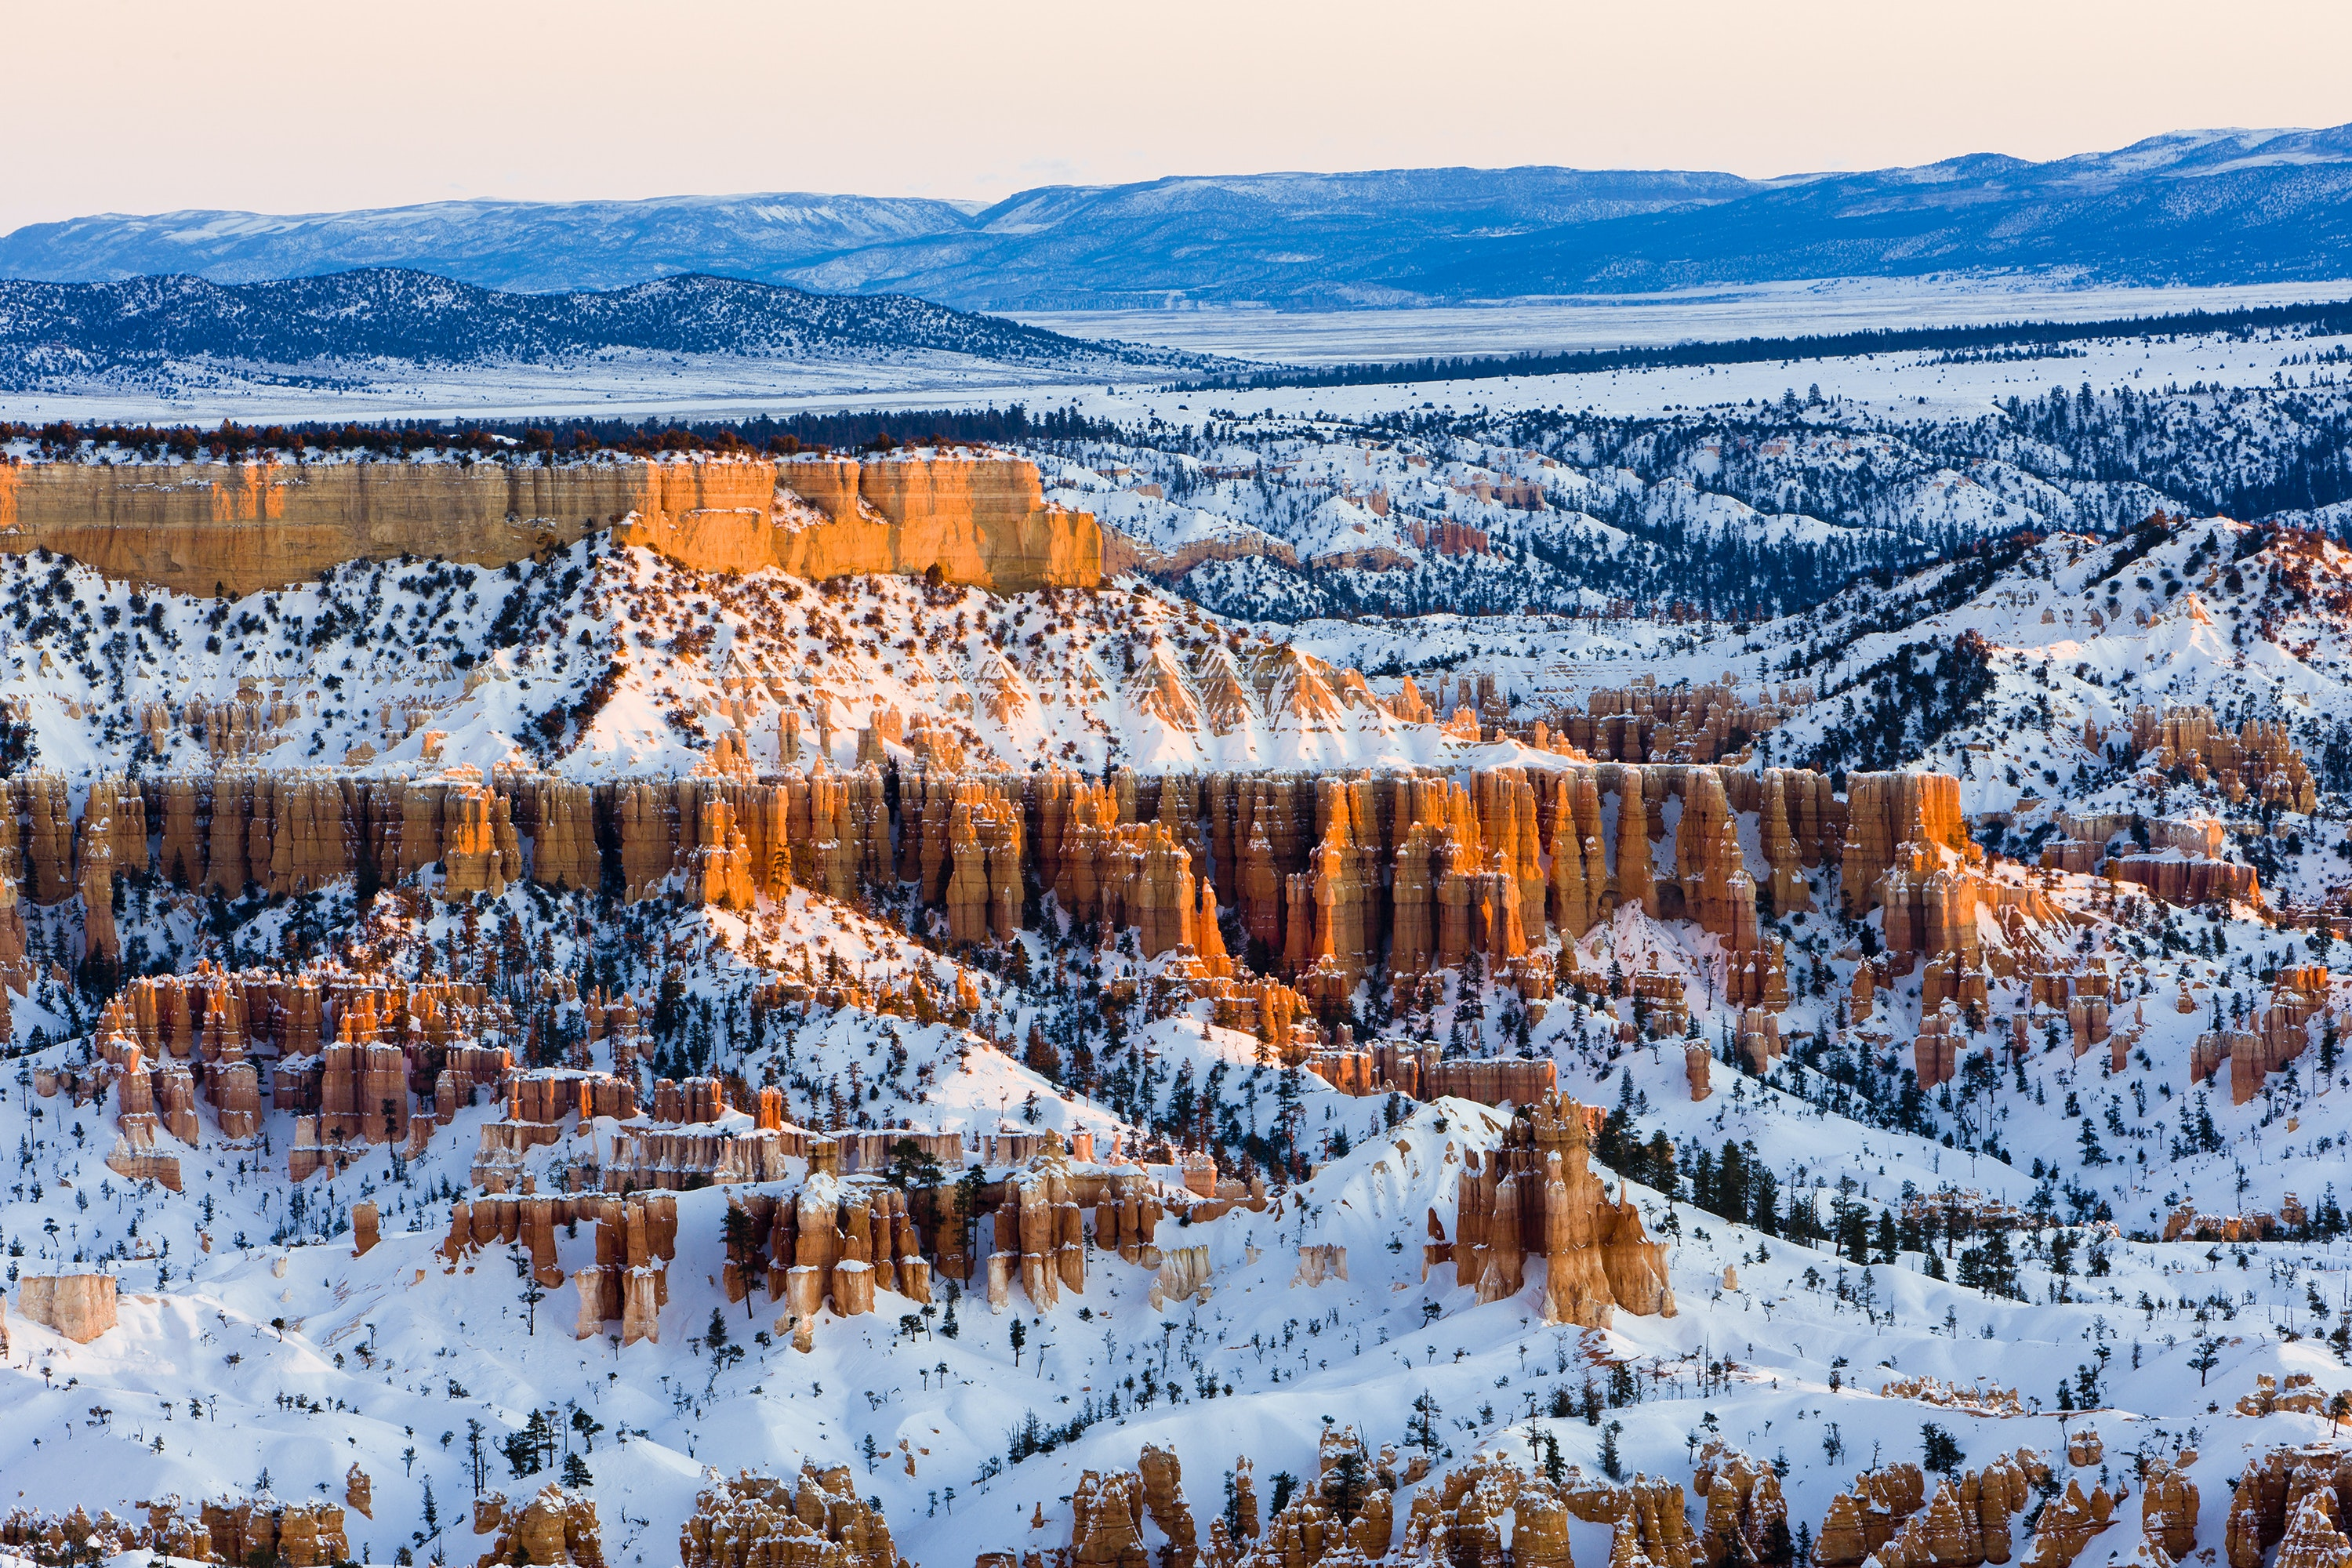 Explore the hoodoos of Bryce Canyon on snowshoes in the winter.